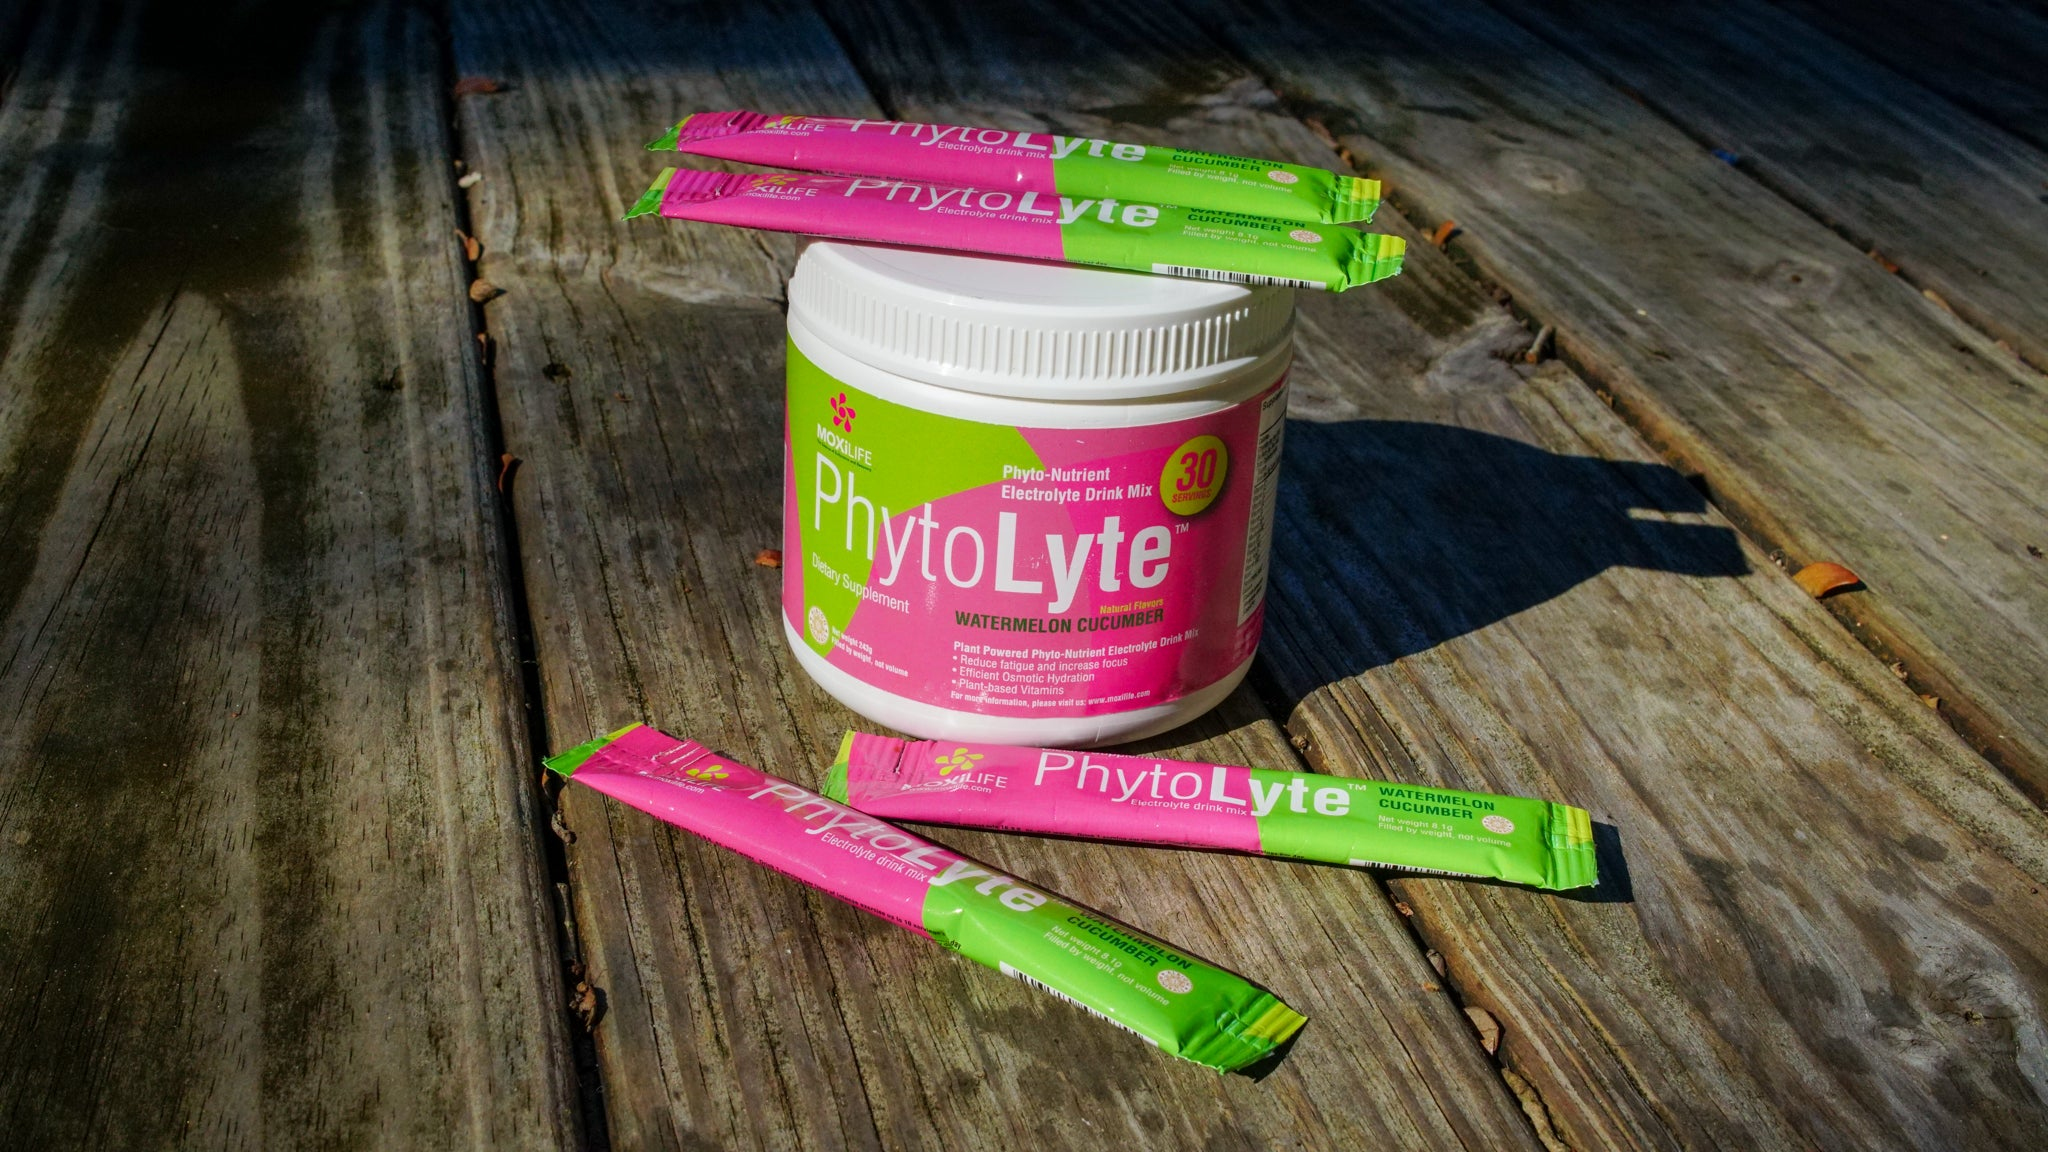 PhytoLyte Tub and Stickpack single servings on wood deck outdoors